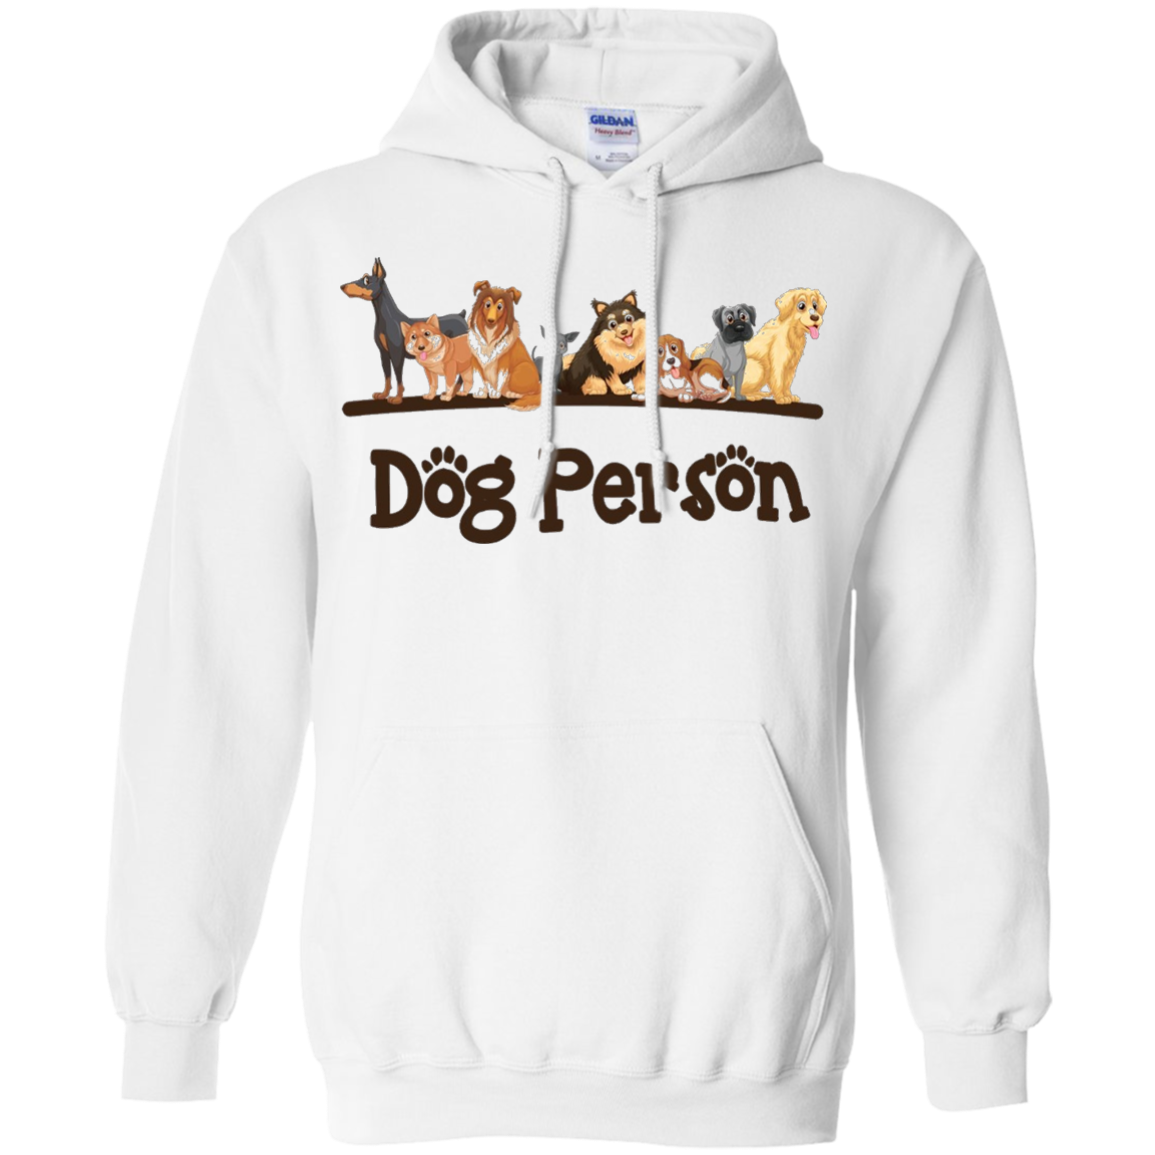 Dog Lovers T-shirt, Dog Person, Puppy Lover by Zany Brainy